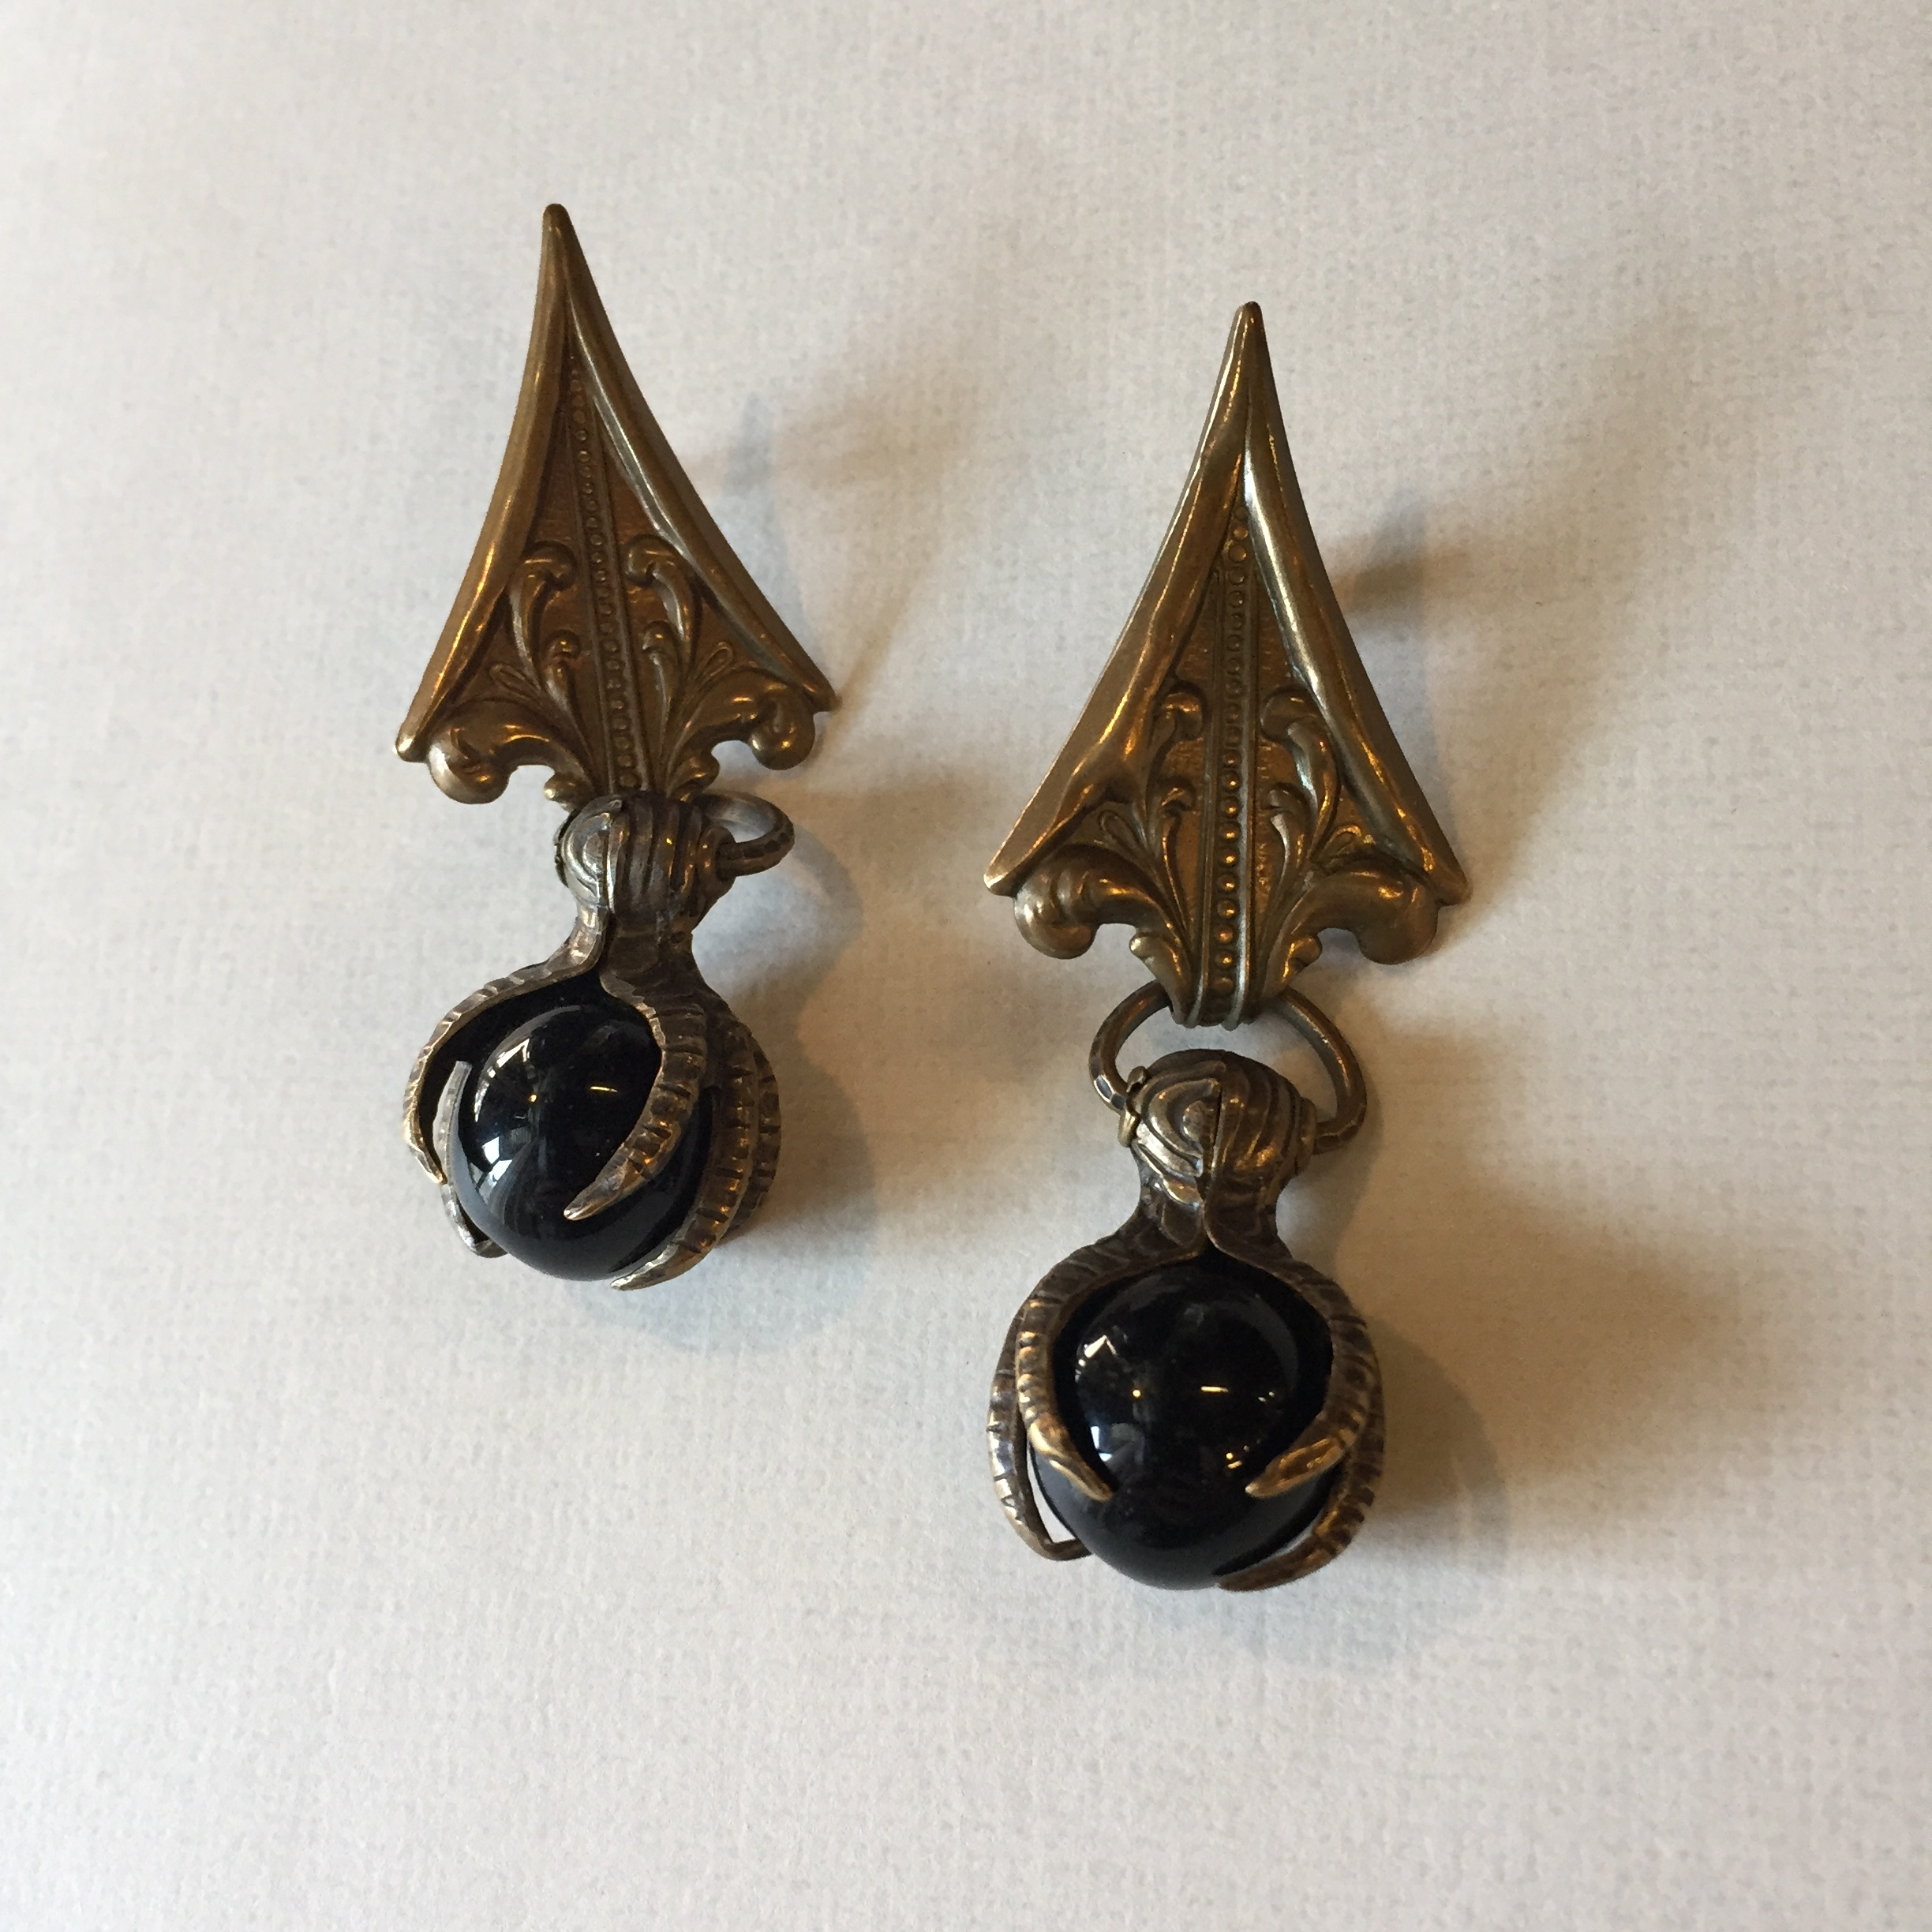 Vintage Earrings with Talons and Onyx Marbles